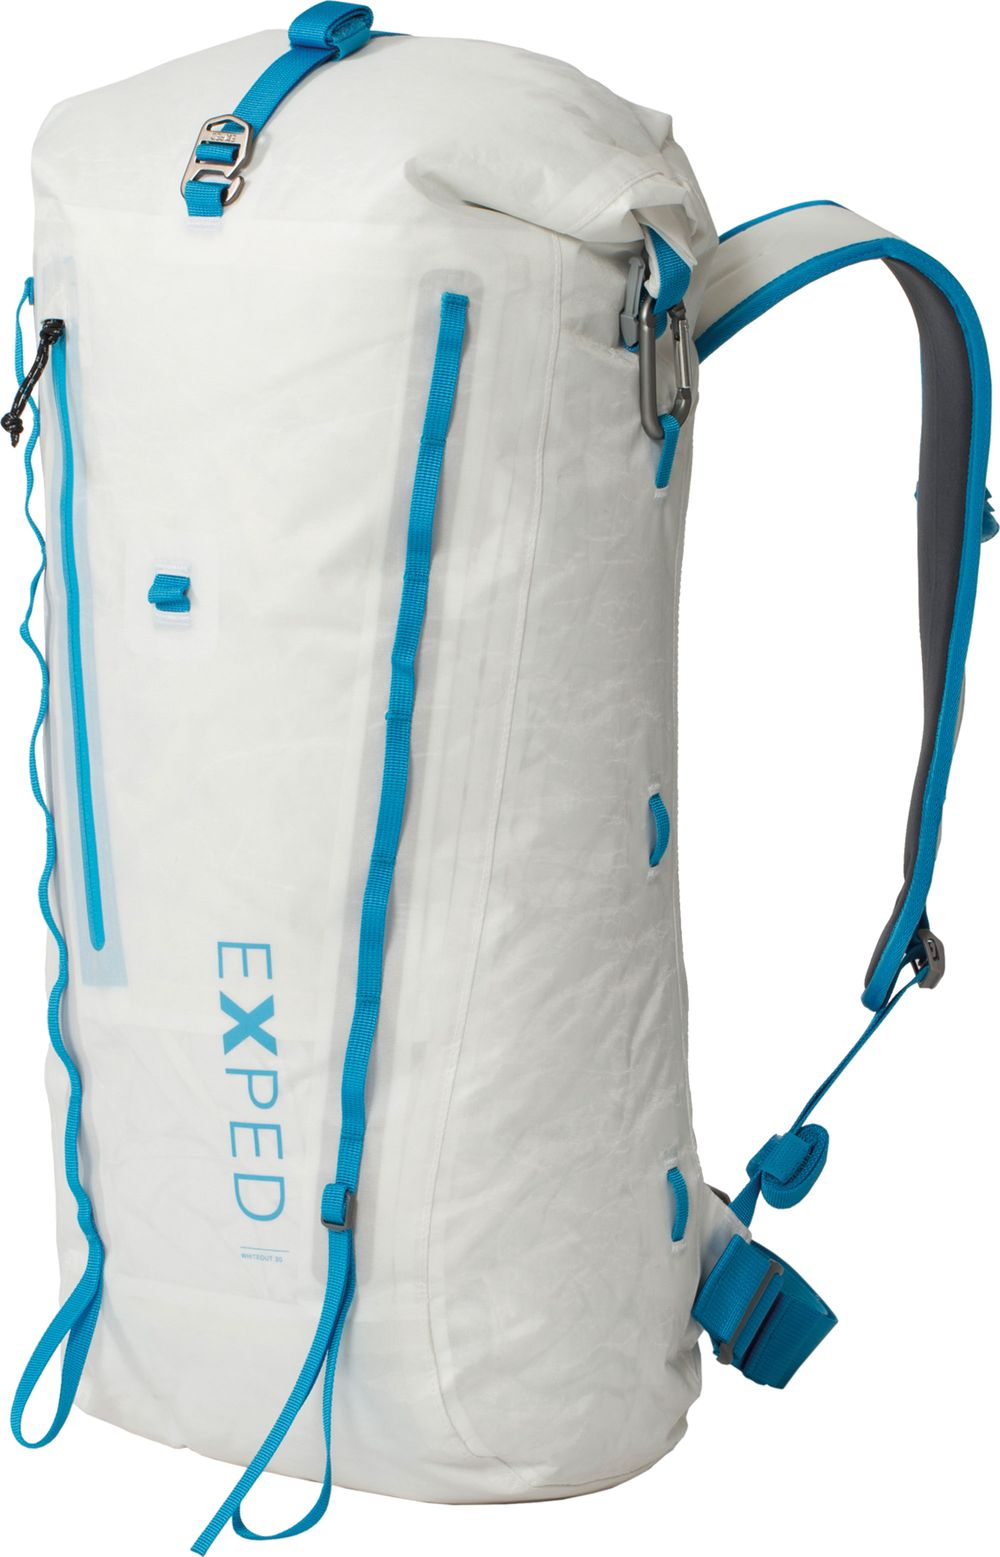 Exped Whiteout 30